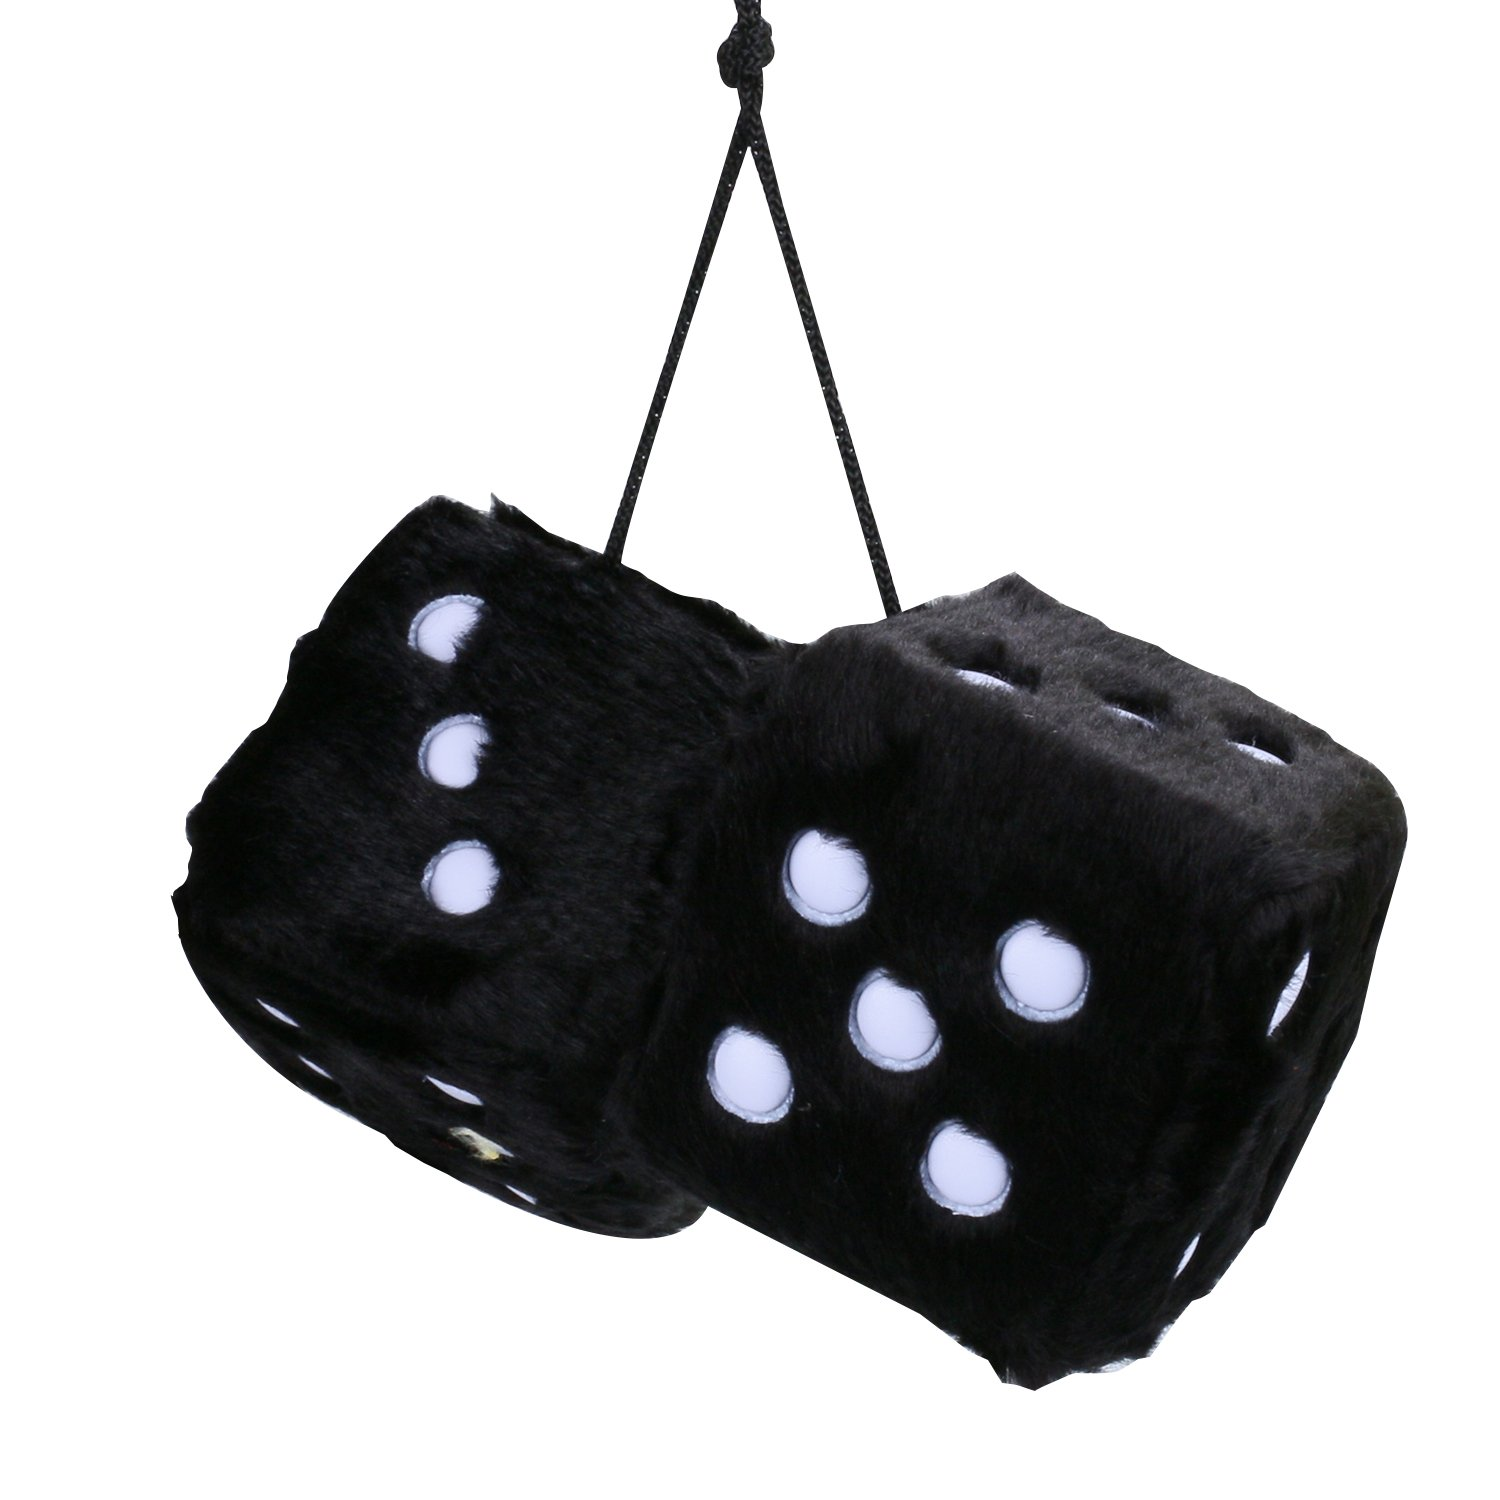 Car Mirror Dice,3 inch Pair of Retro Square Mirror Hanging Dice Black Couple Fuzzy Plush Dice with Dots For Car Interior Ornament Decoration